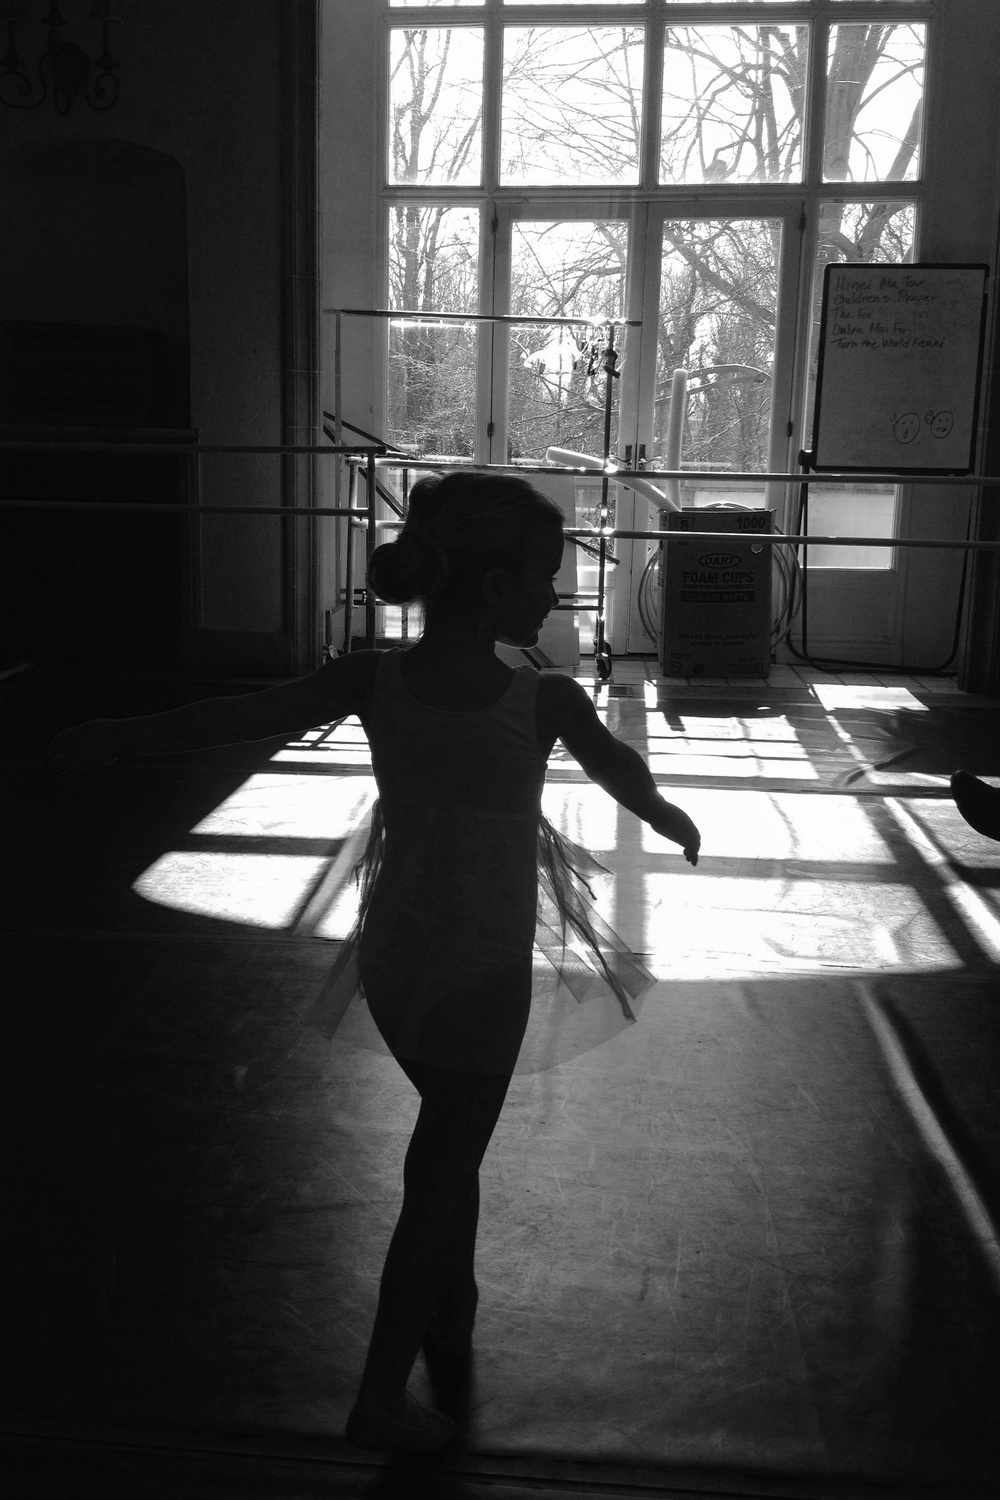 Libby, Ballet practice, March 7, 2103